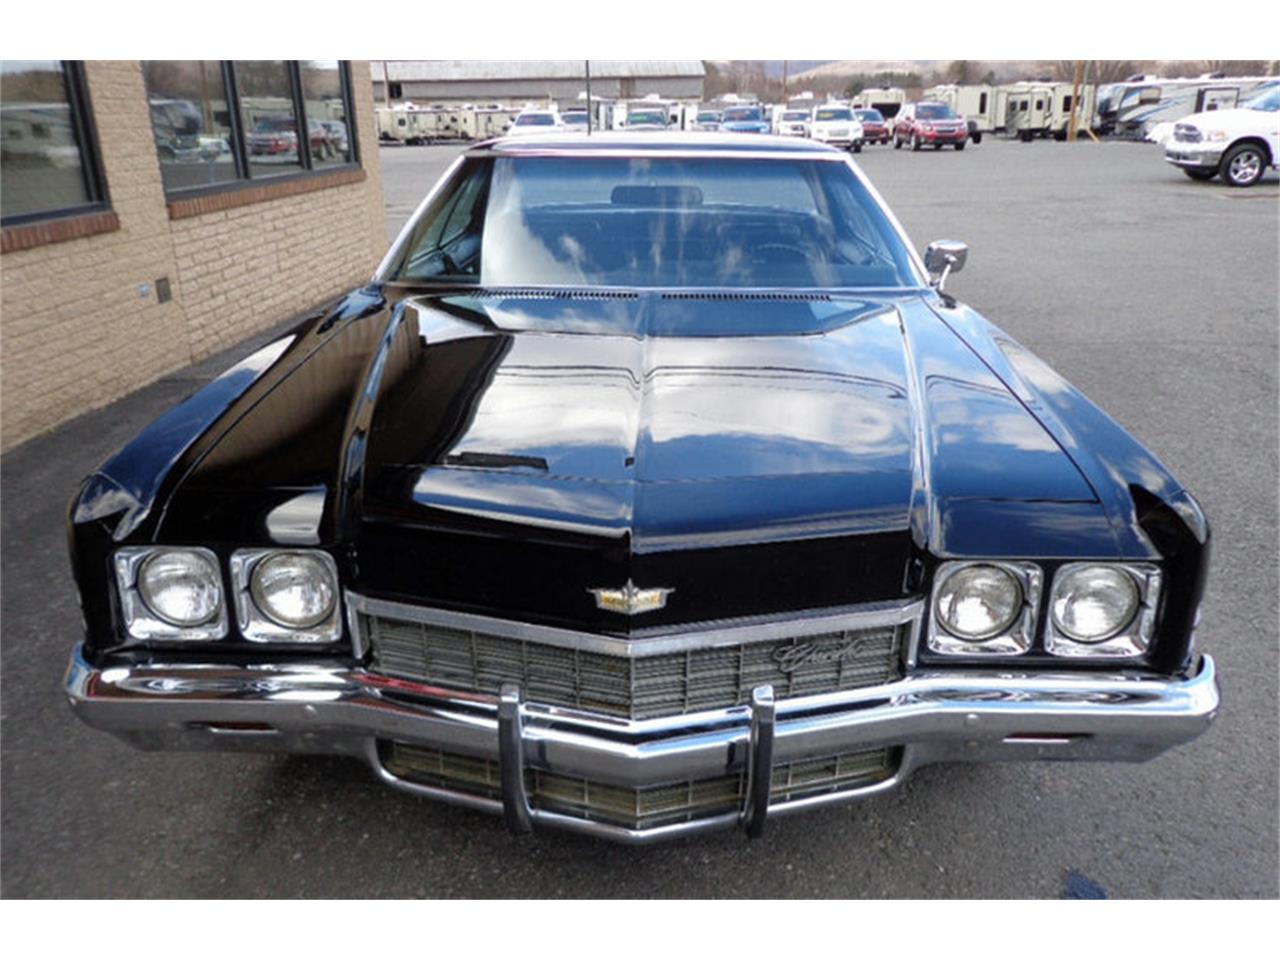 For Sale: 1972 Chevrolet Caprice in West Chester, Pennsylvania